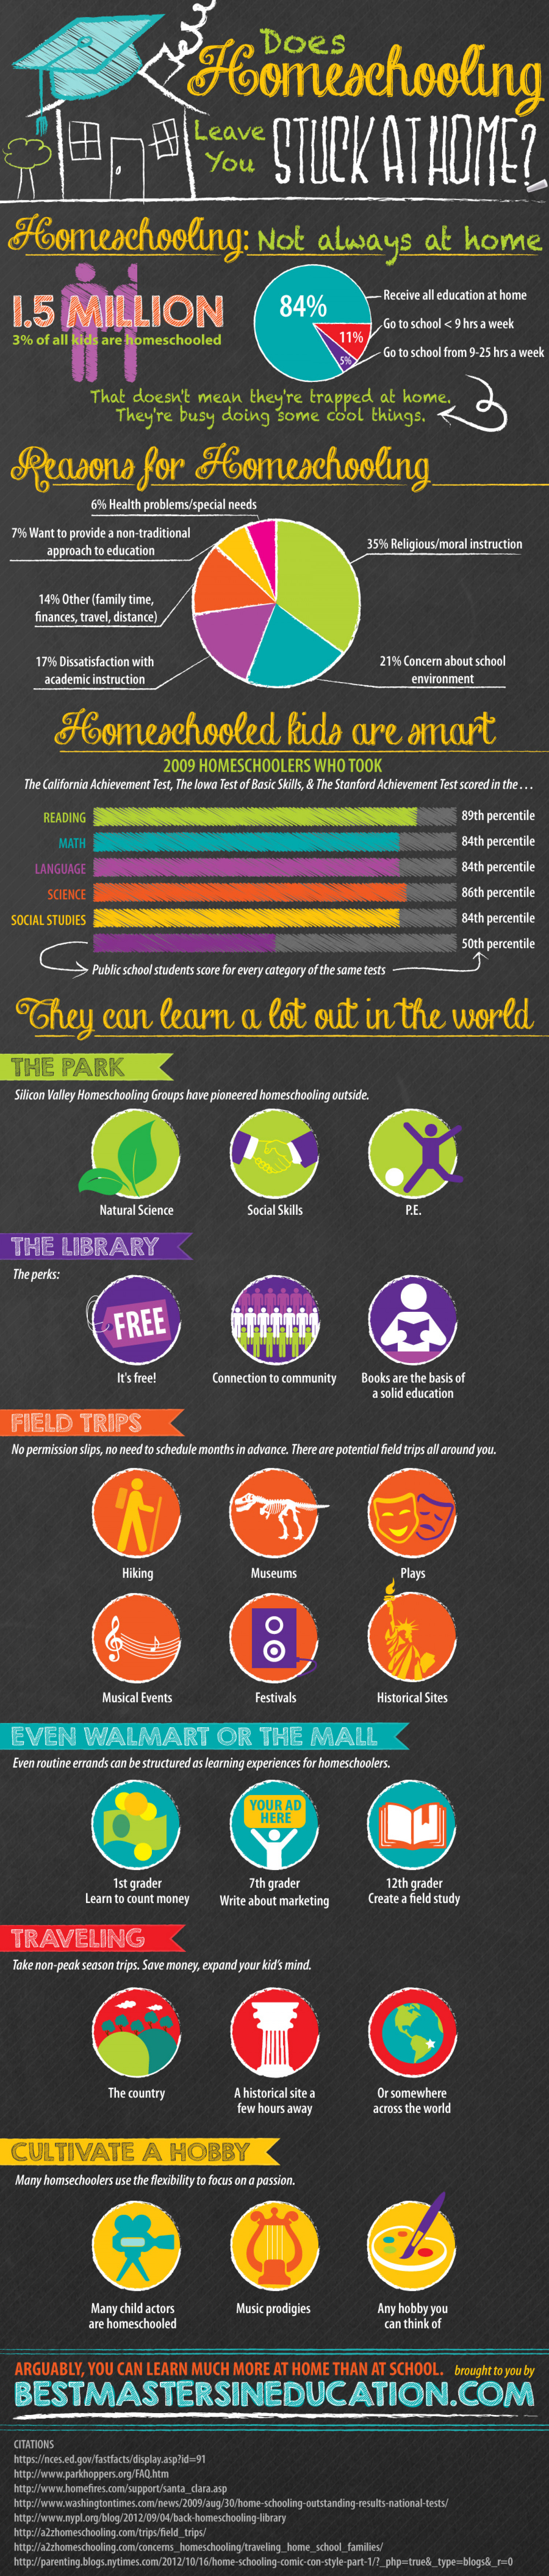 Does Homeschooling Leave You Stuck at Home? Infographic